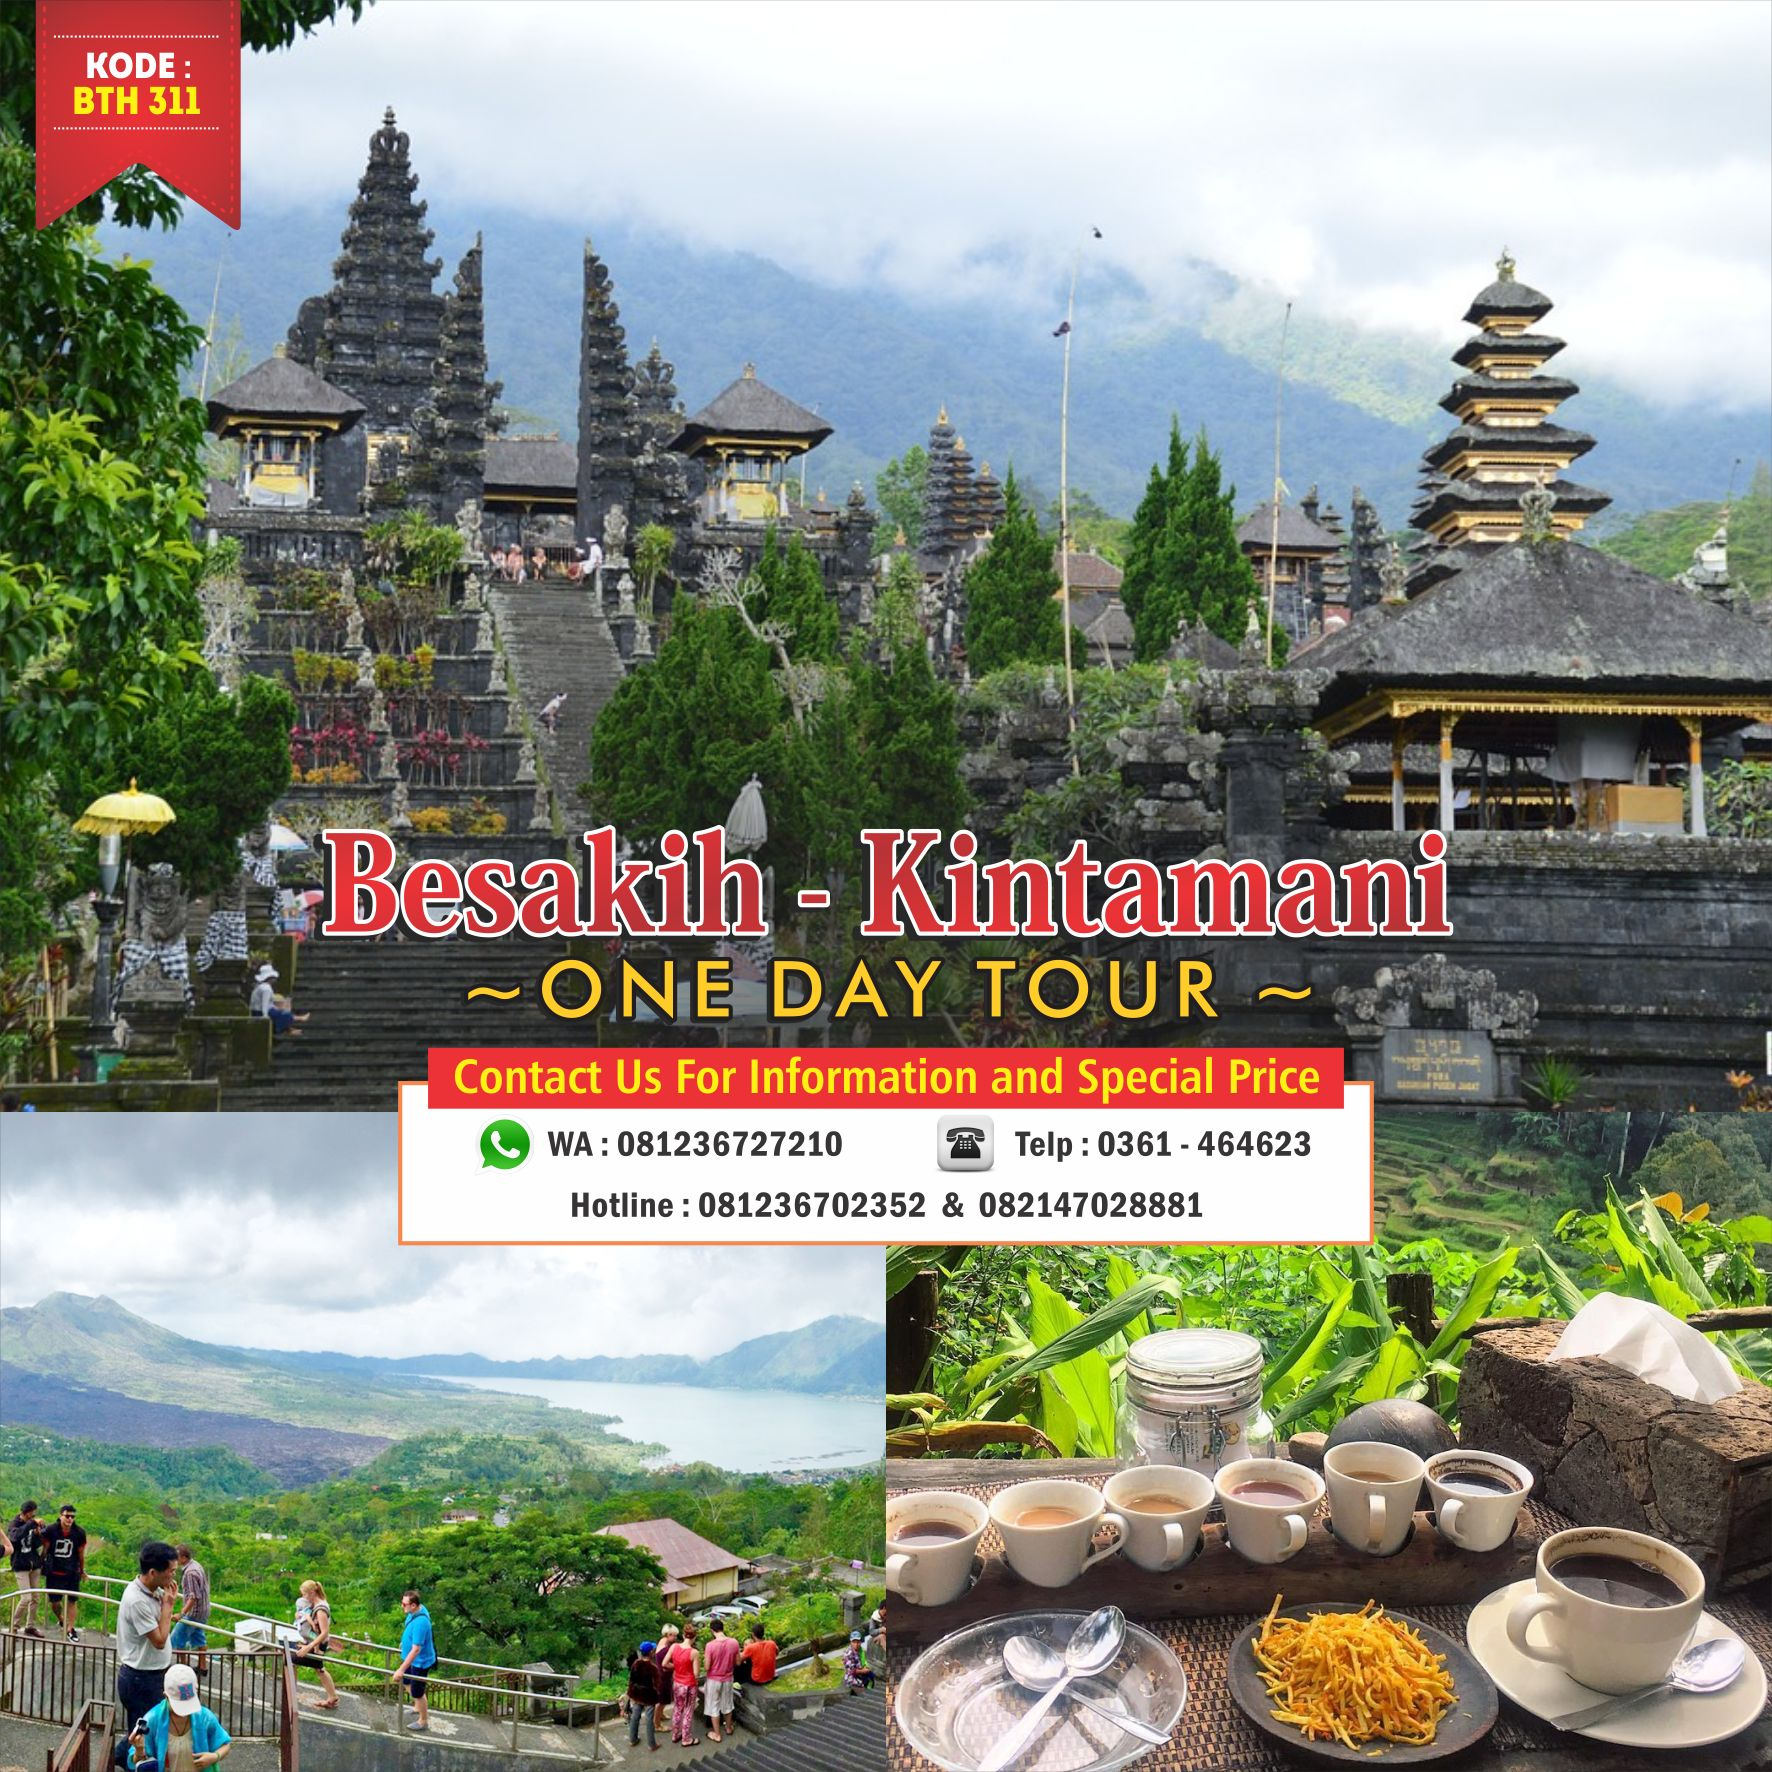 Besakih Kintamani One Day Tour